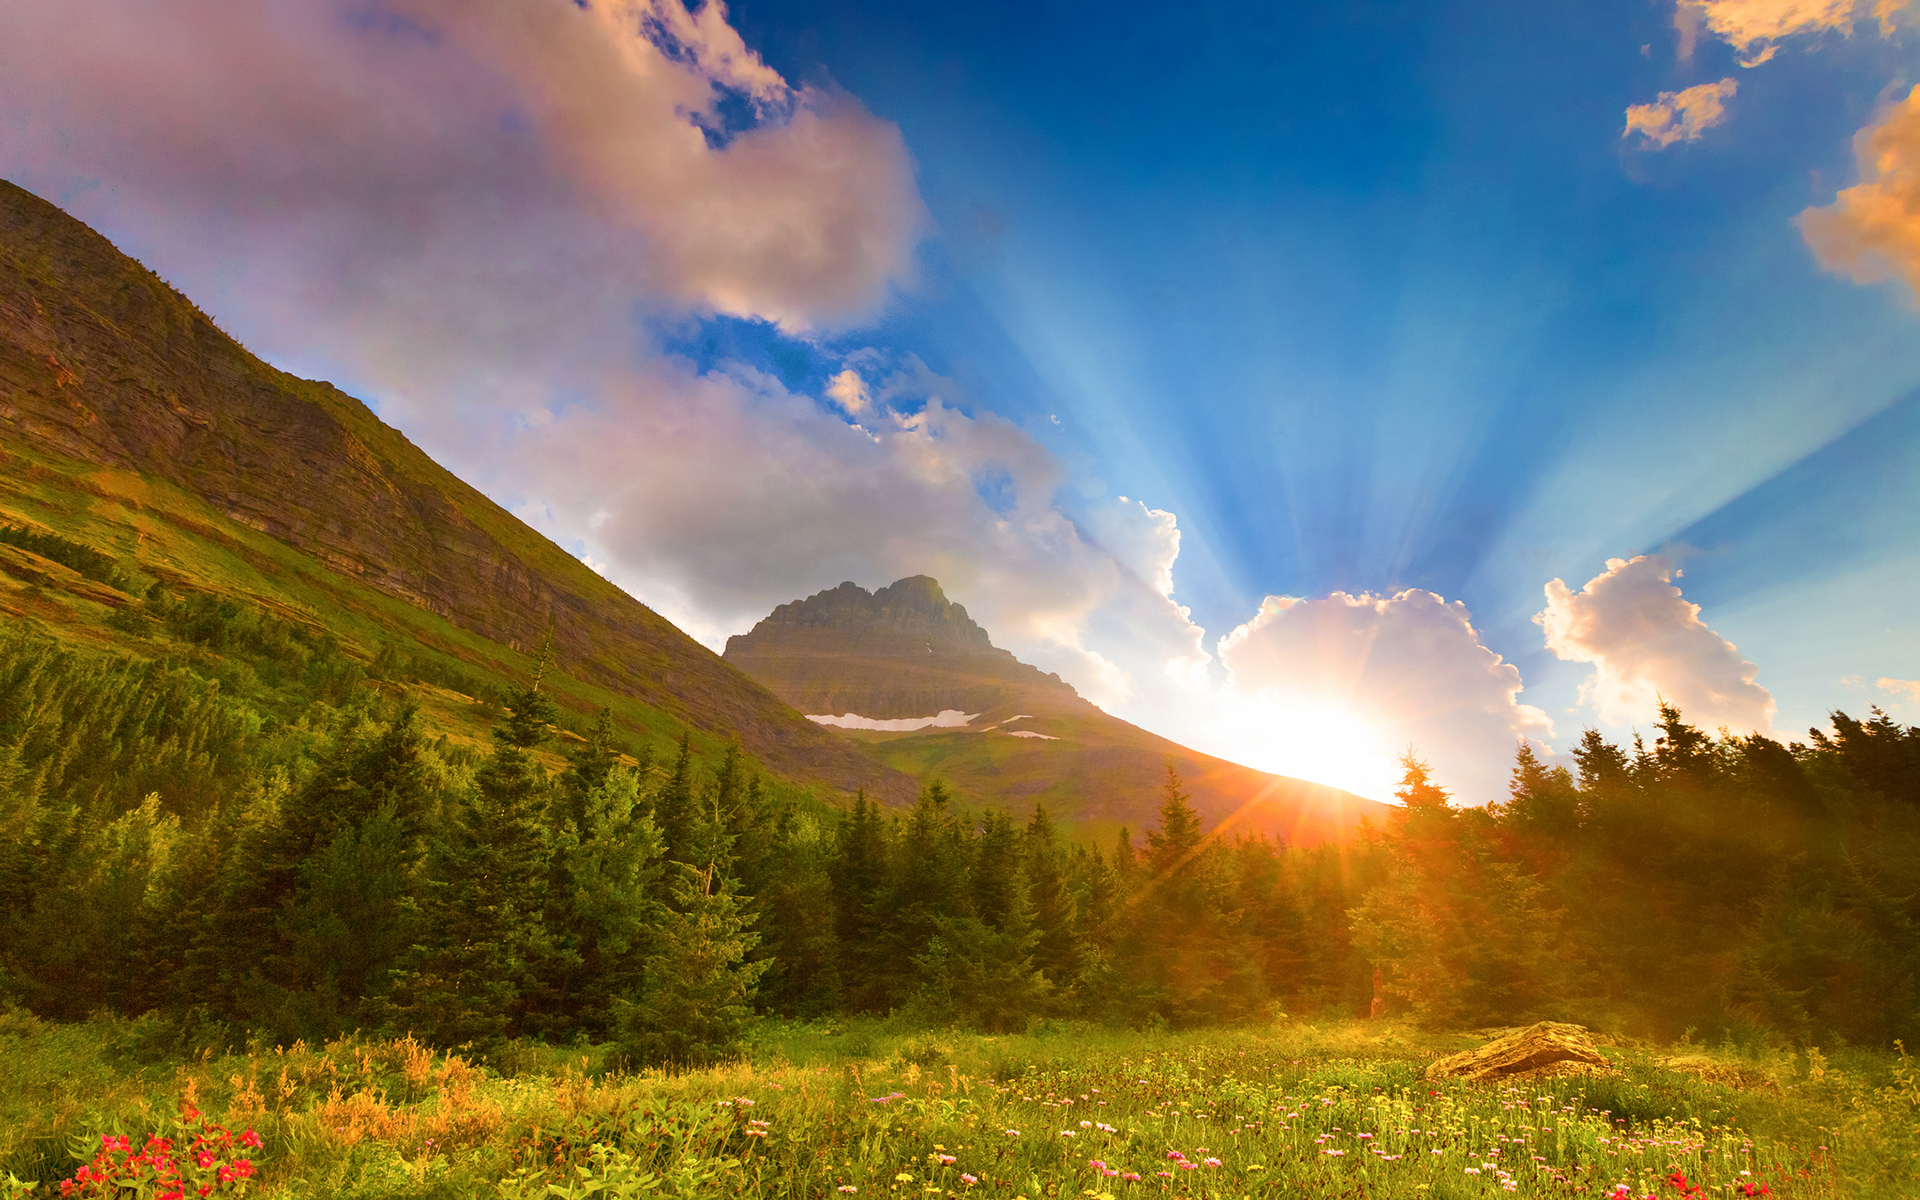 Sunrise Mountain Scenery Wallpaper